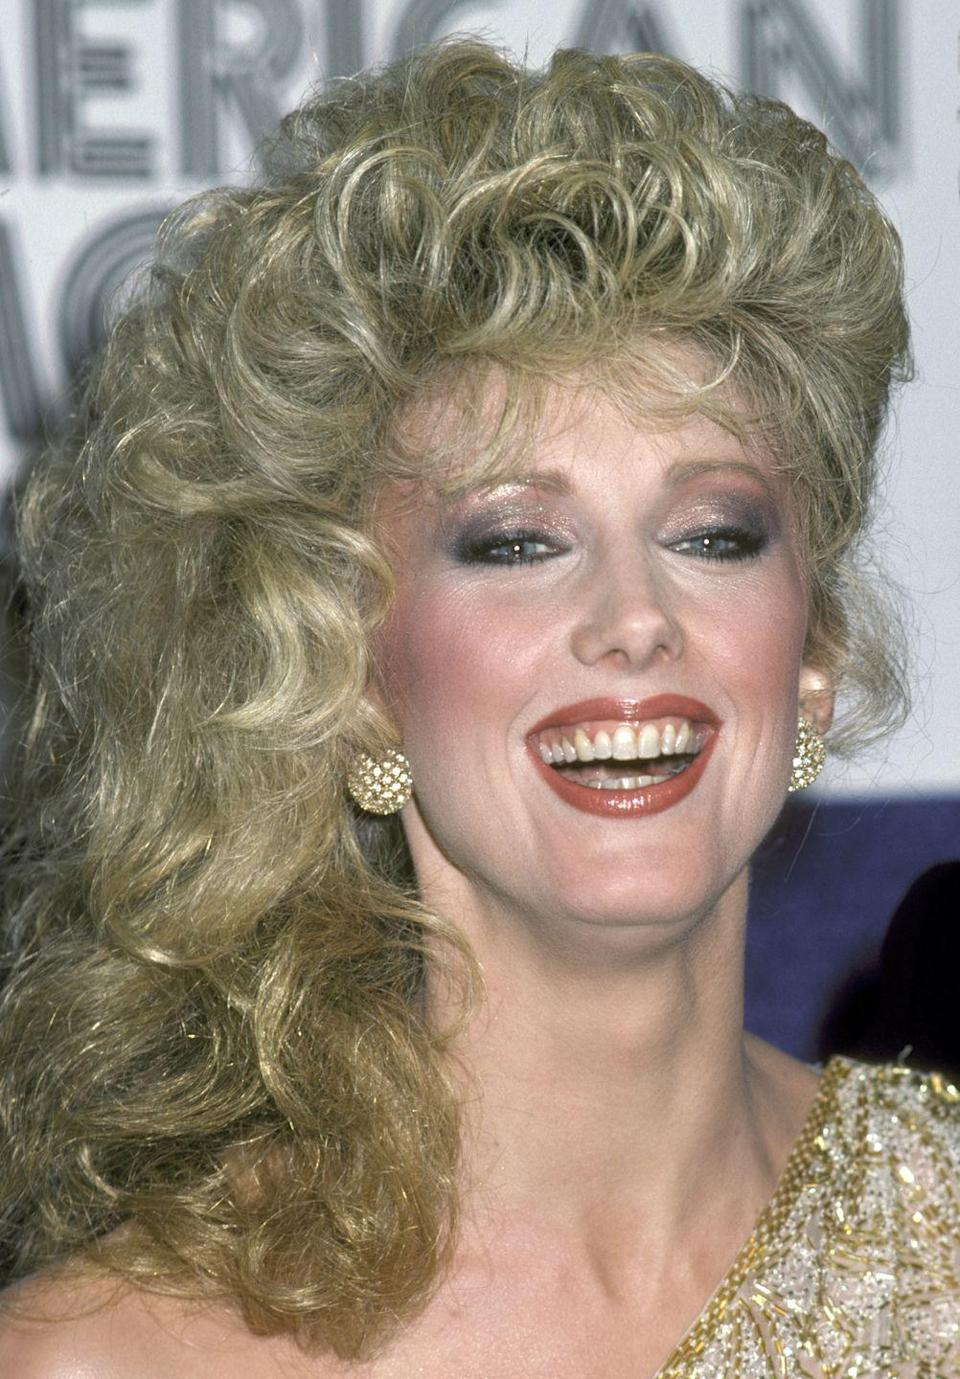 <p>Admit it: If you grew up in the '80s, you wore this gloriously unbalanced hairstyle at least once.</p>